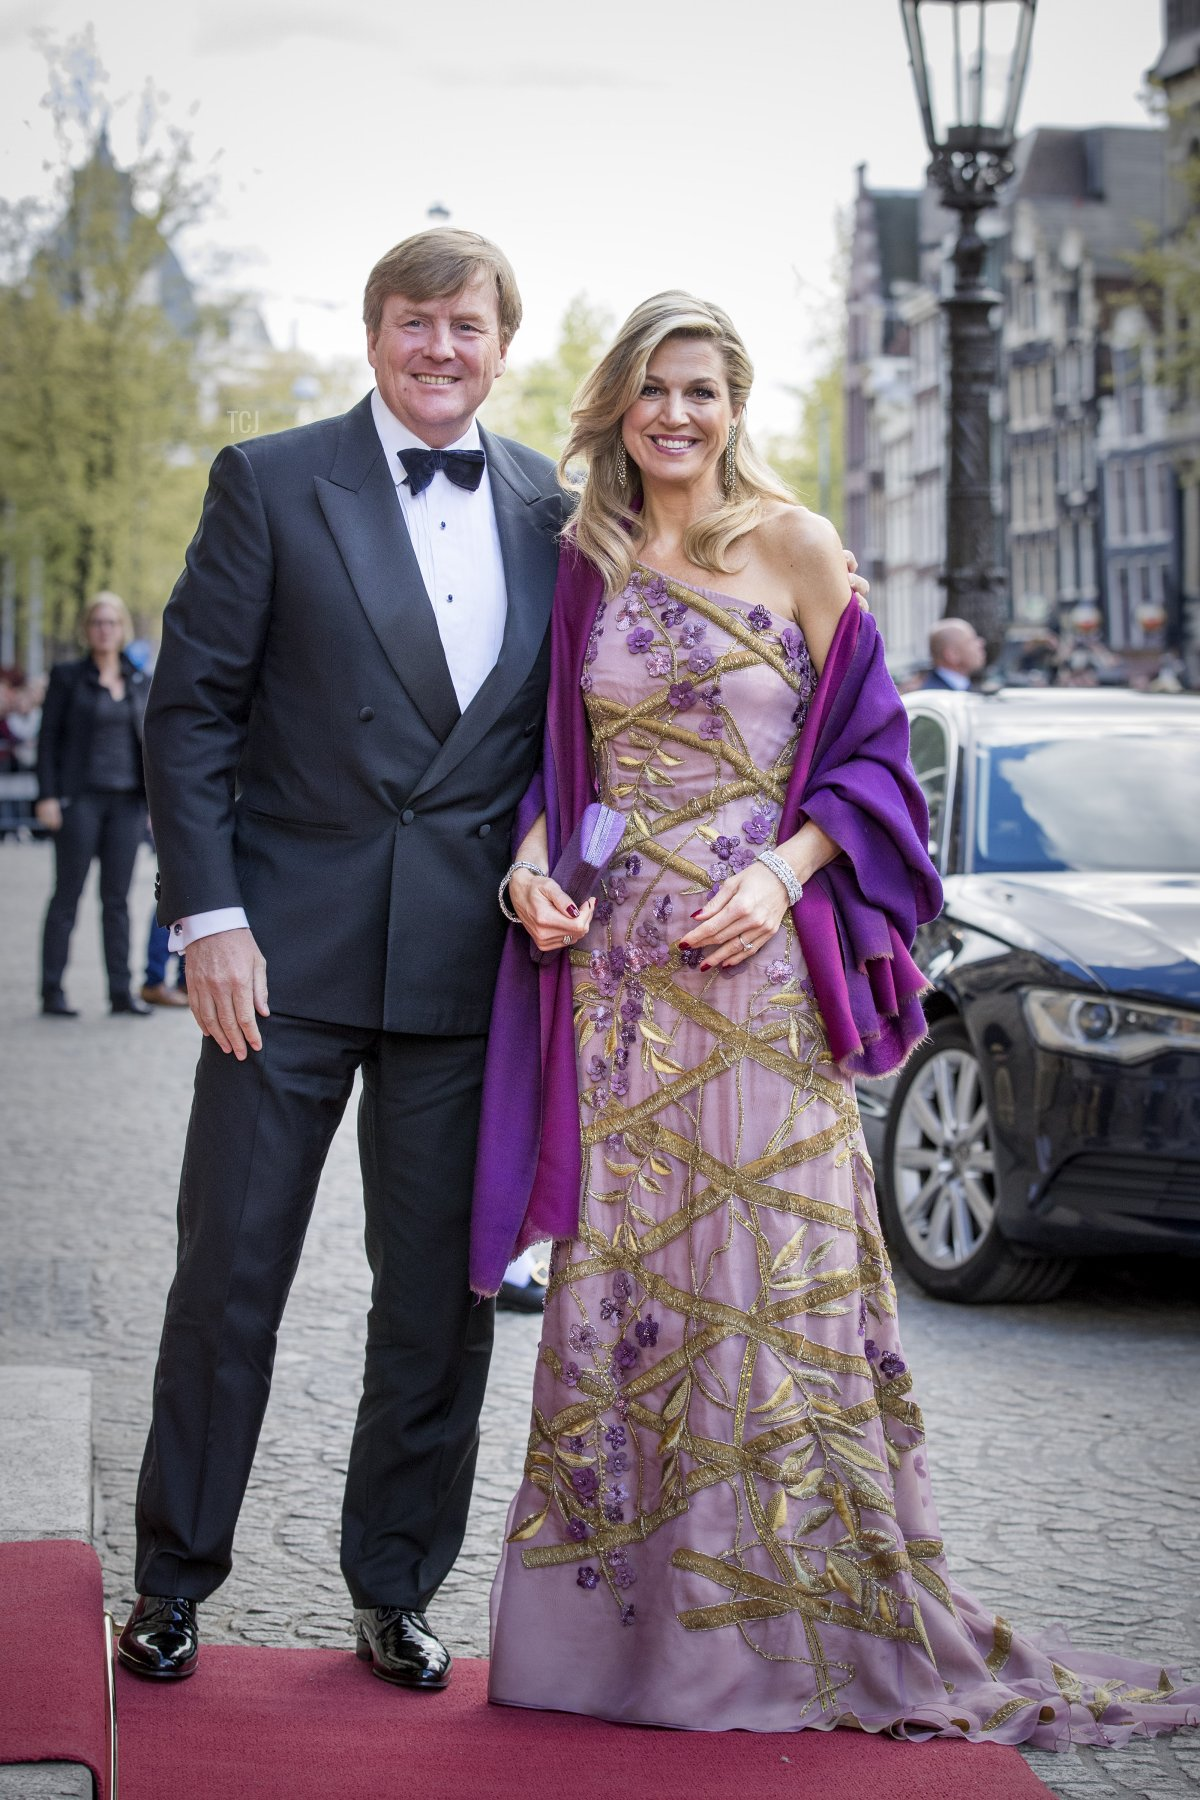 King Willem-Alexander and Queen Maxima of The Netherlands host a dinner for 150 Dutch people to celebrate his 50th birthday in the Royal Palace on April 28, 2017 in Amsterdam, Netherlands